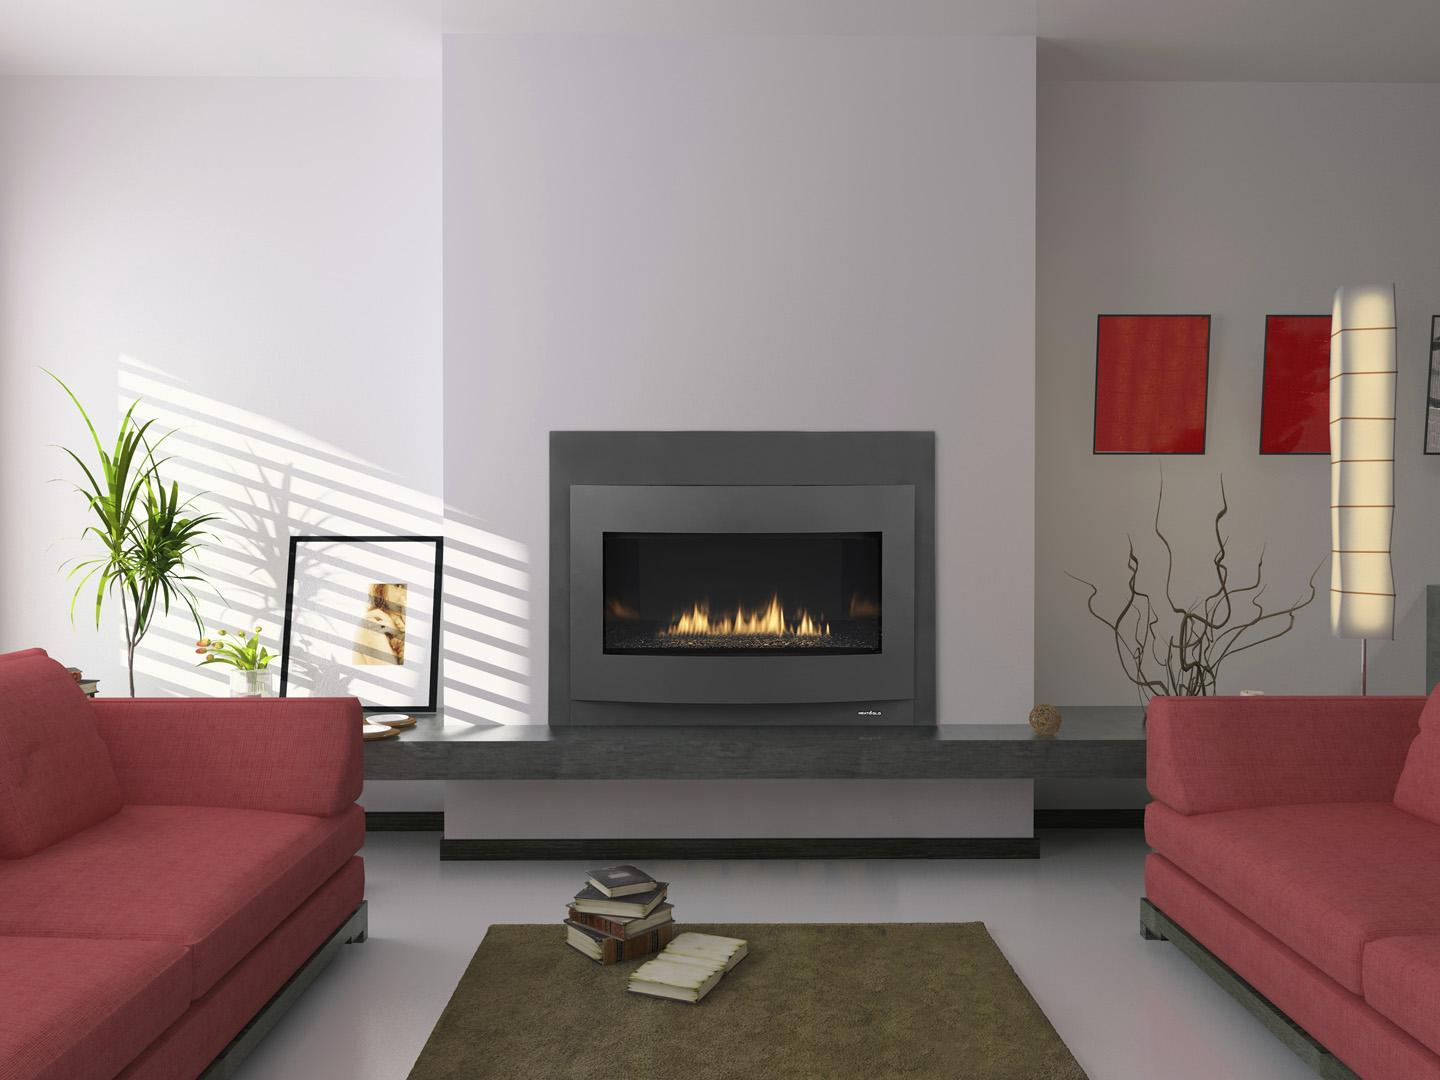 Design 4 Fireplace: New Design For Your Style 2